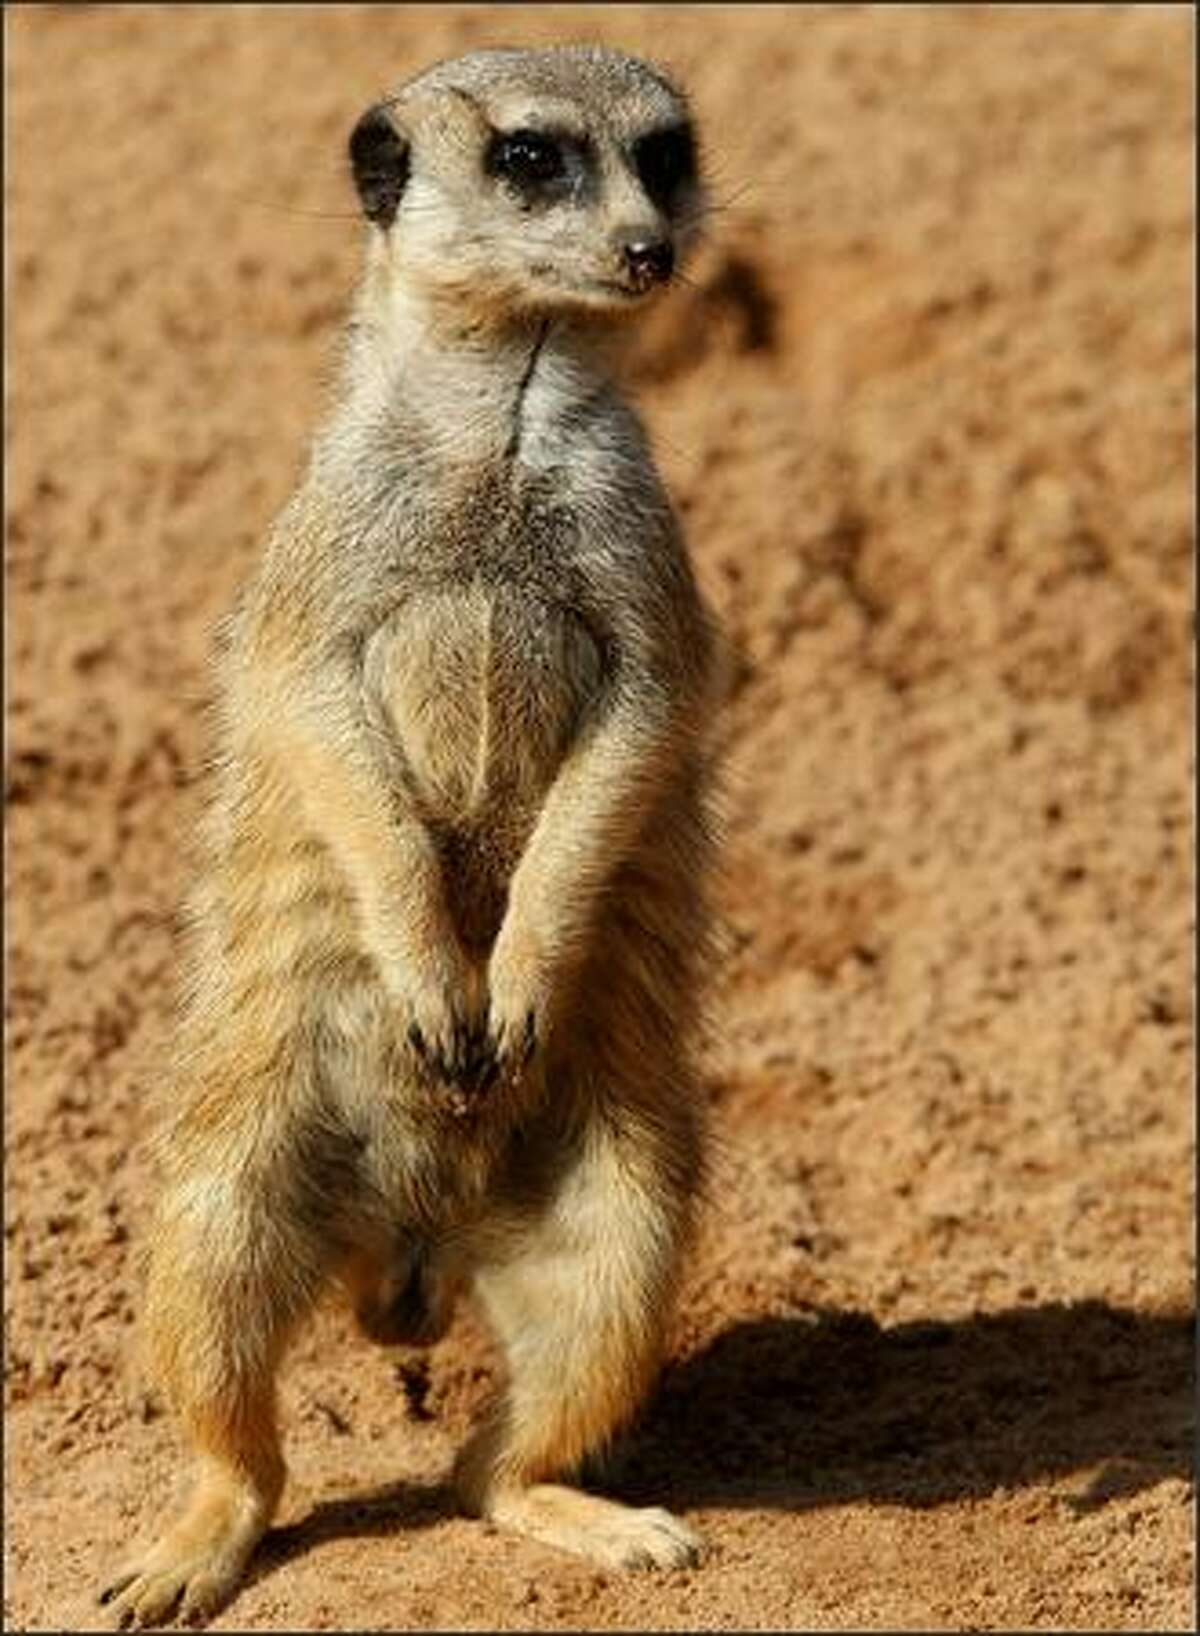 Meerkat and alpha male 'Bob' stands on his hind legs in Taronga Zoo's African-themed Meerkat Desert. 'Bob', who is the resident Cassanova and the last Meerkat born at the zoo in 2000, is the suspected father of two Meerkat pups 'Nairobi' and 'Zanzibar' (not pictured).